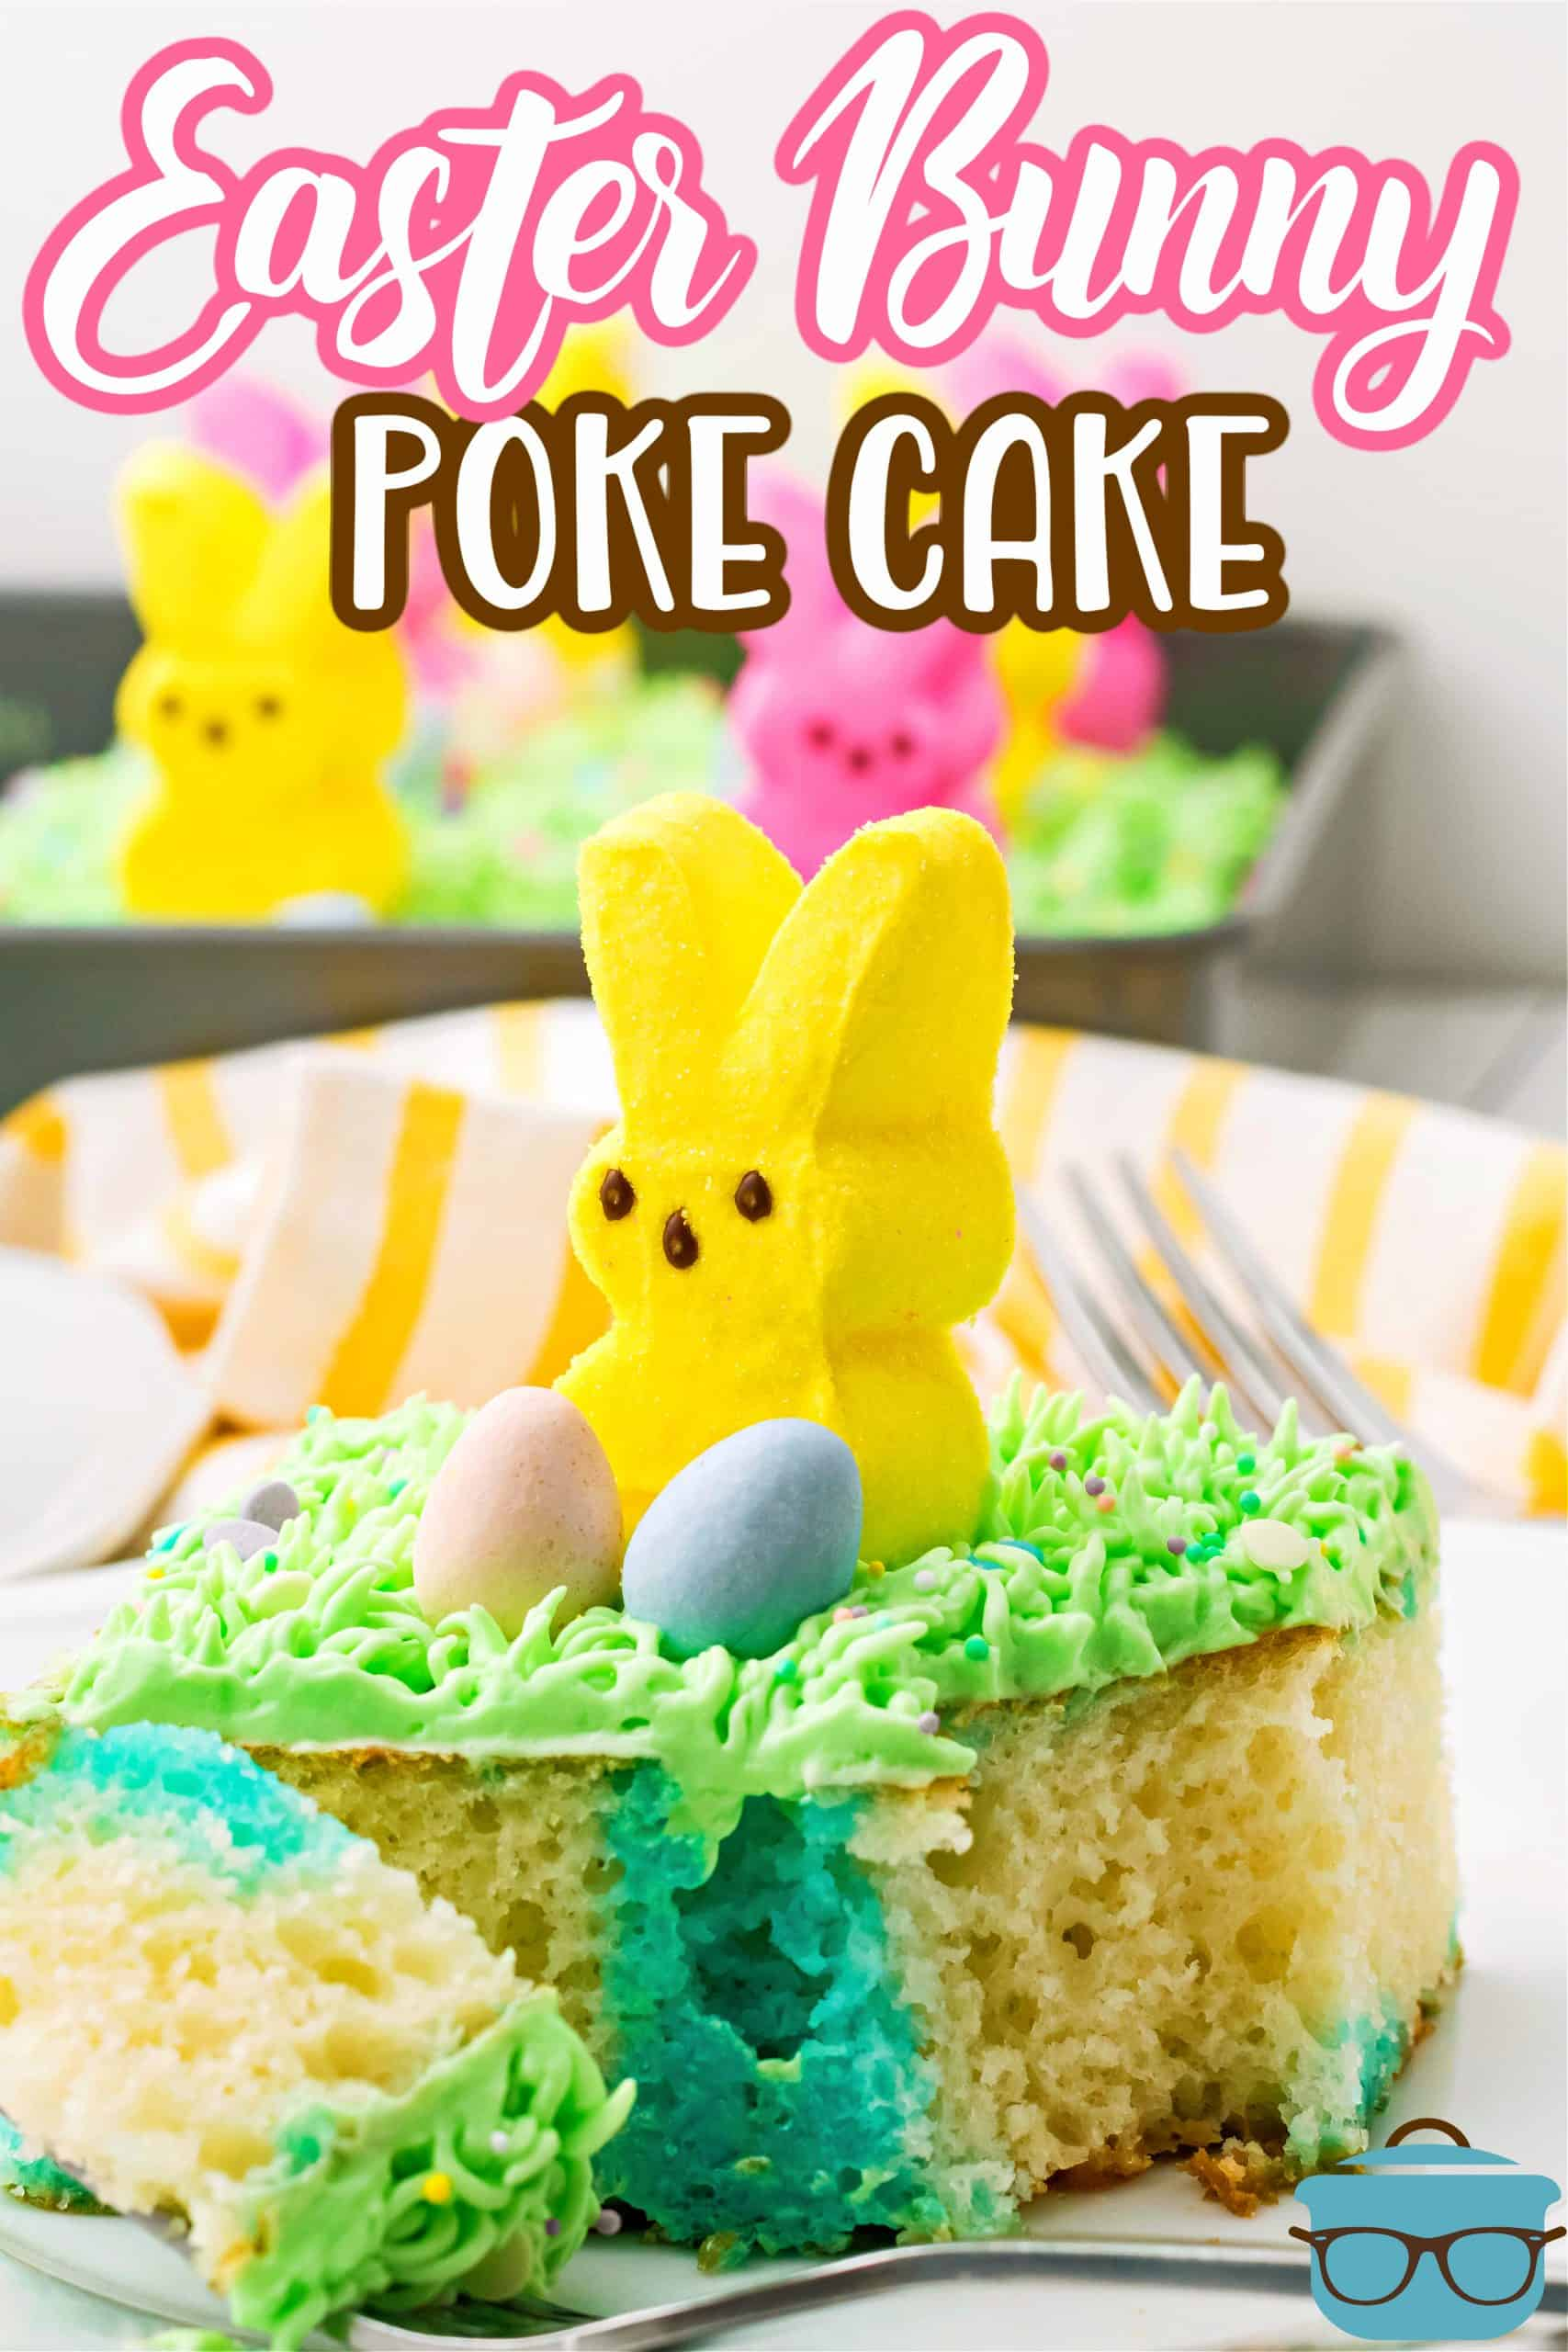 """This Easter Bunny Poke Cake is poked with Jell-O, topped with a fun whipped """"grass"""" frosting and topped with bunny Peeps and Cadbury eggs. A fun, flavorful Easter cake!"""